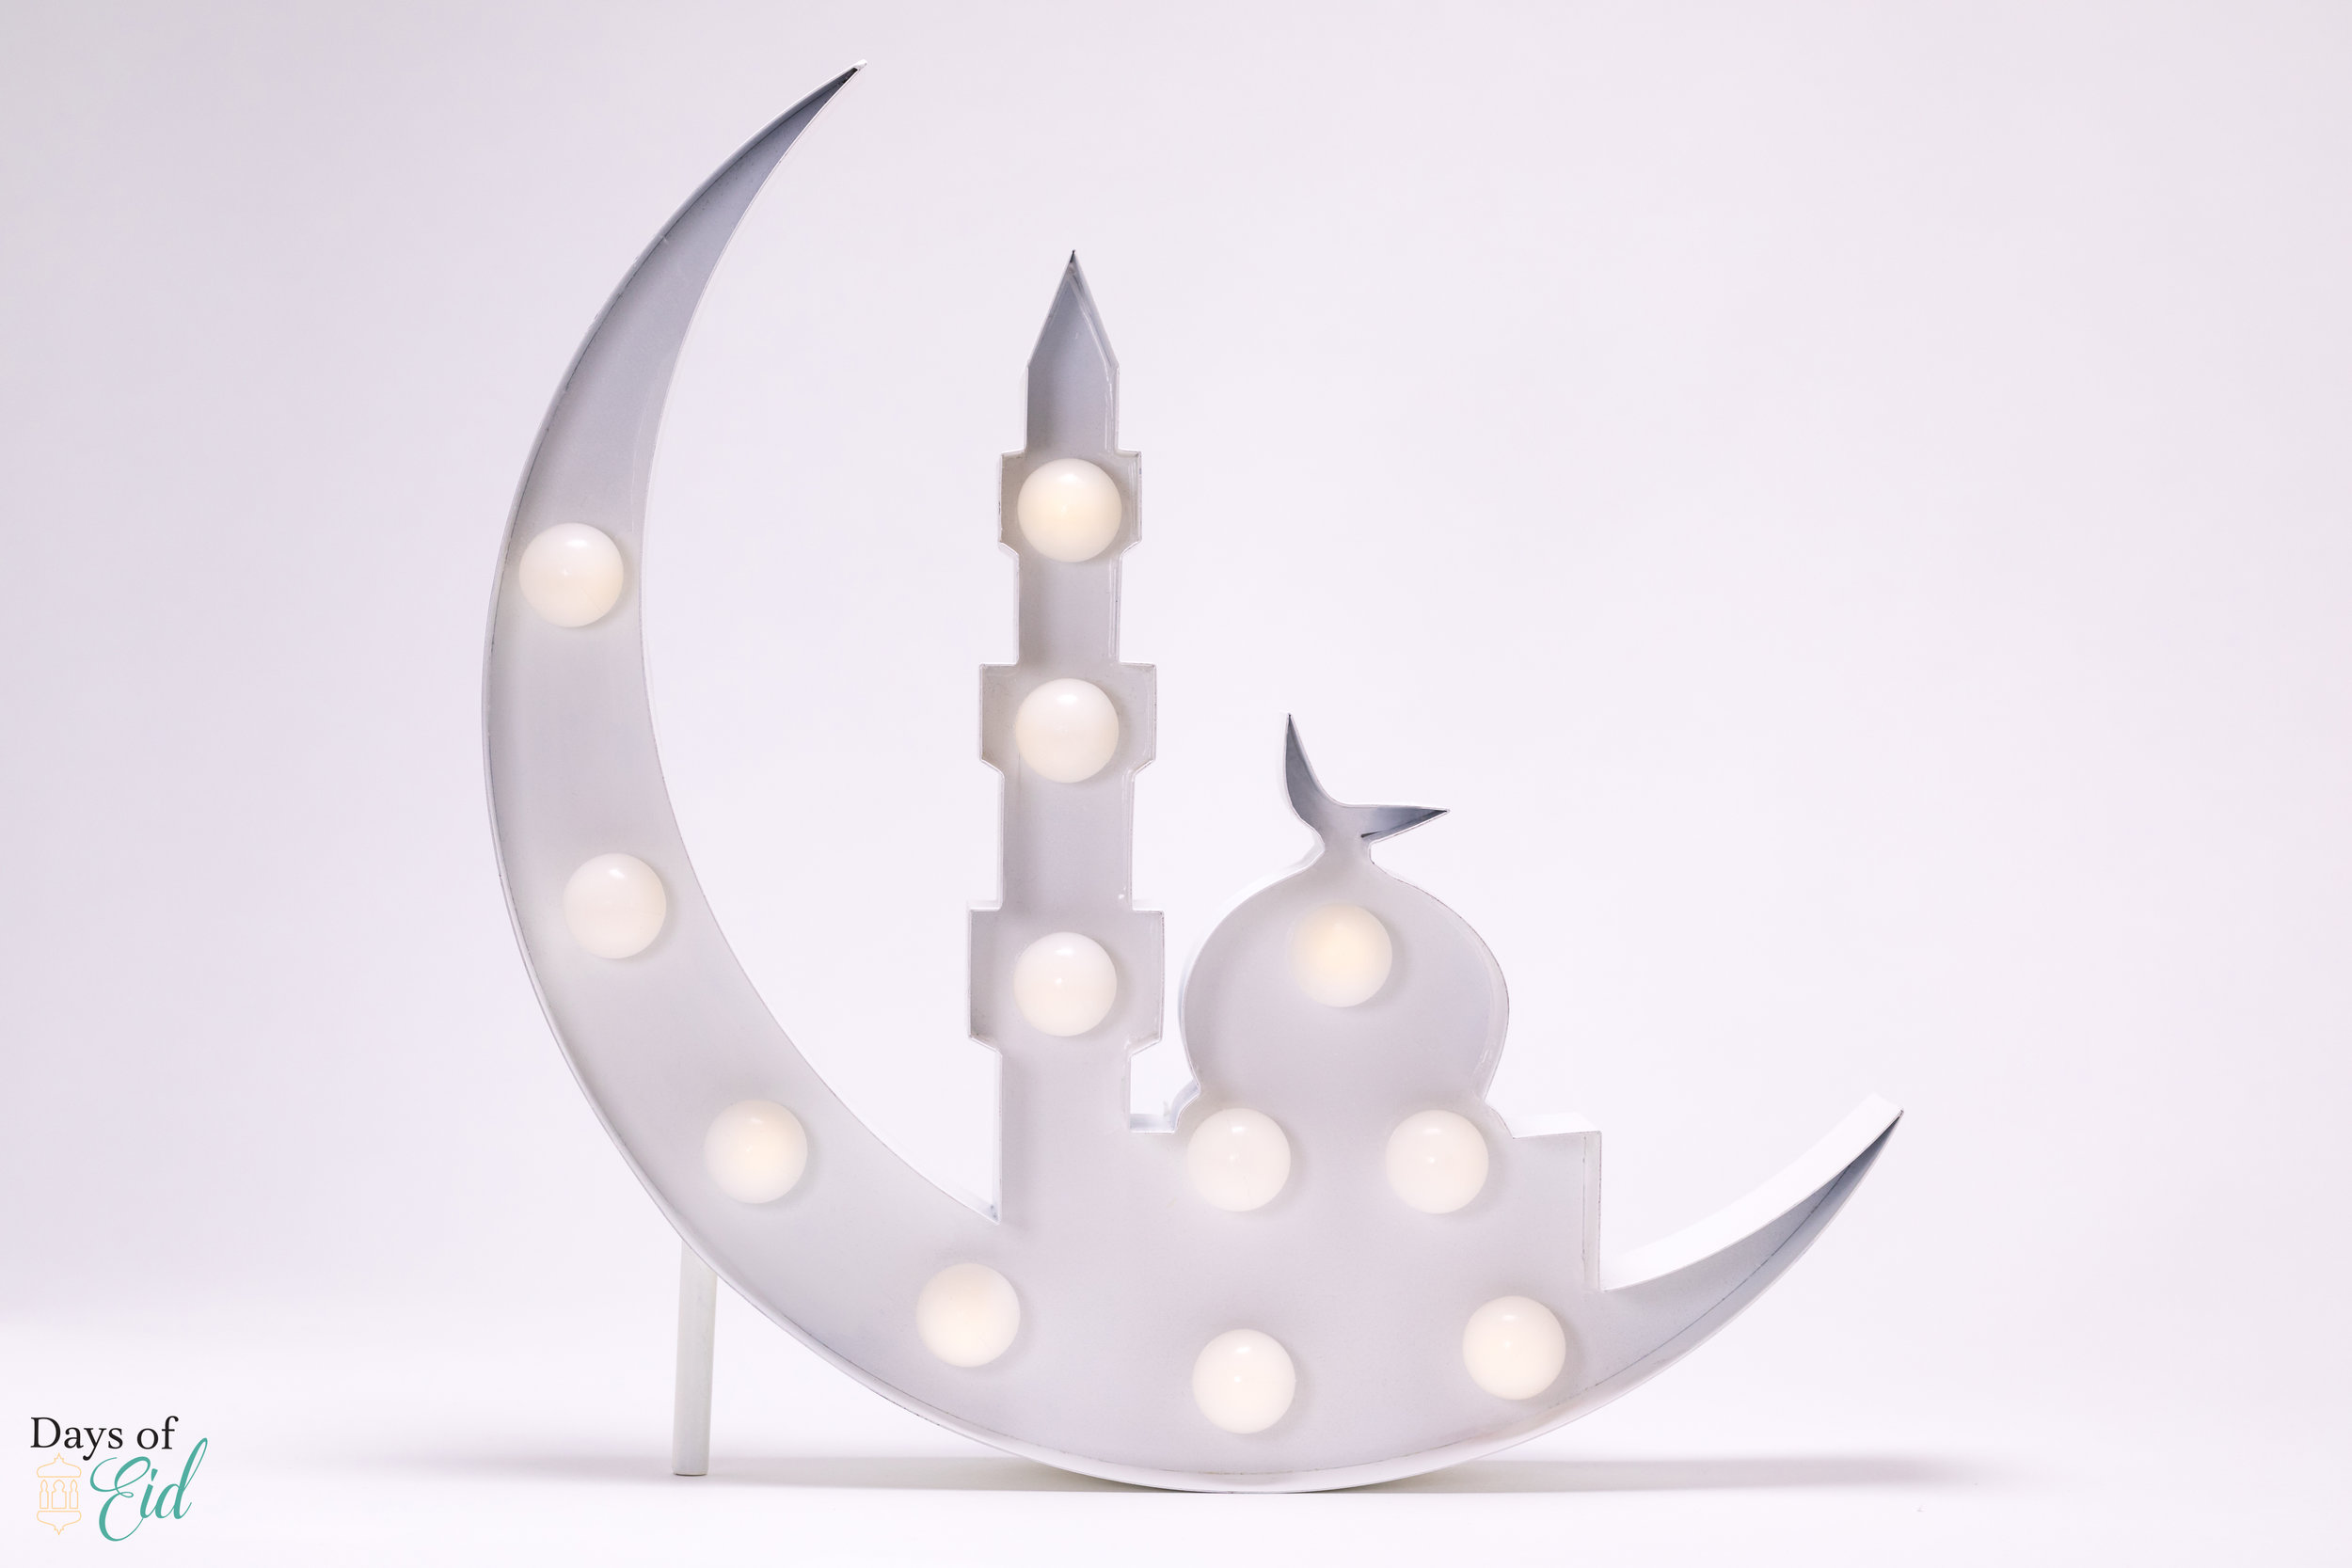 Eid-Home-Decorations-Days-of-Eid-1.jpg